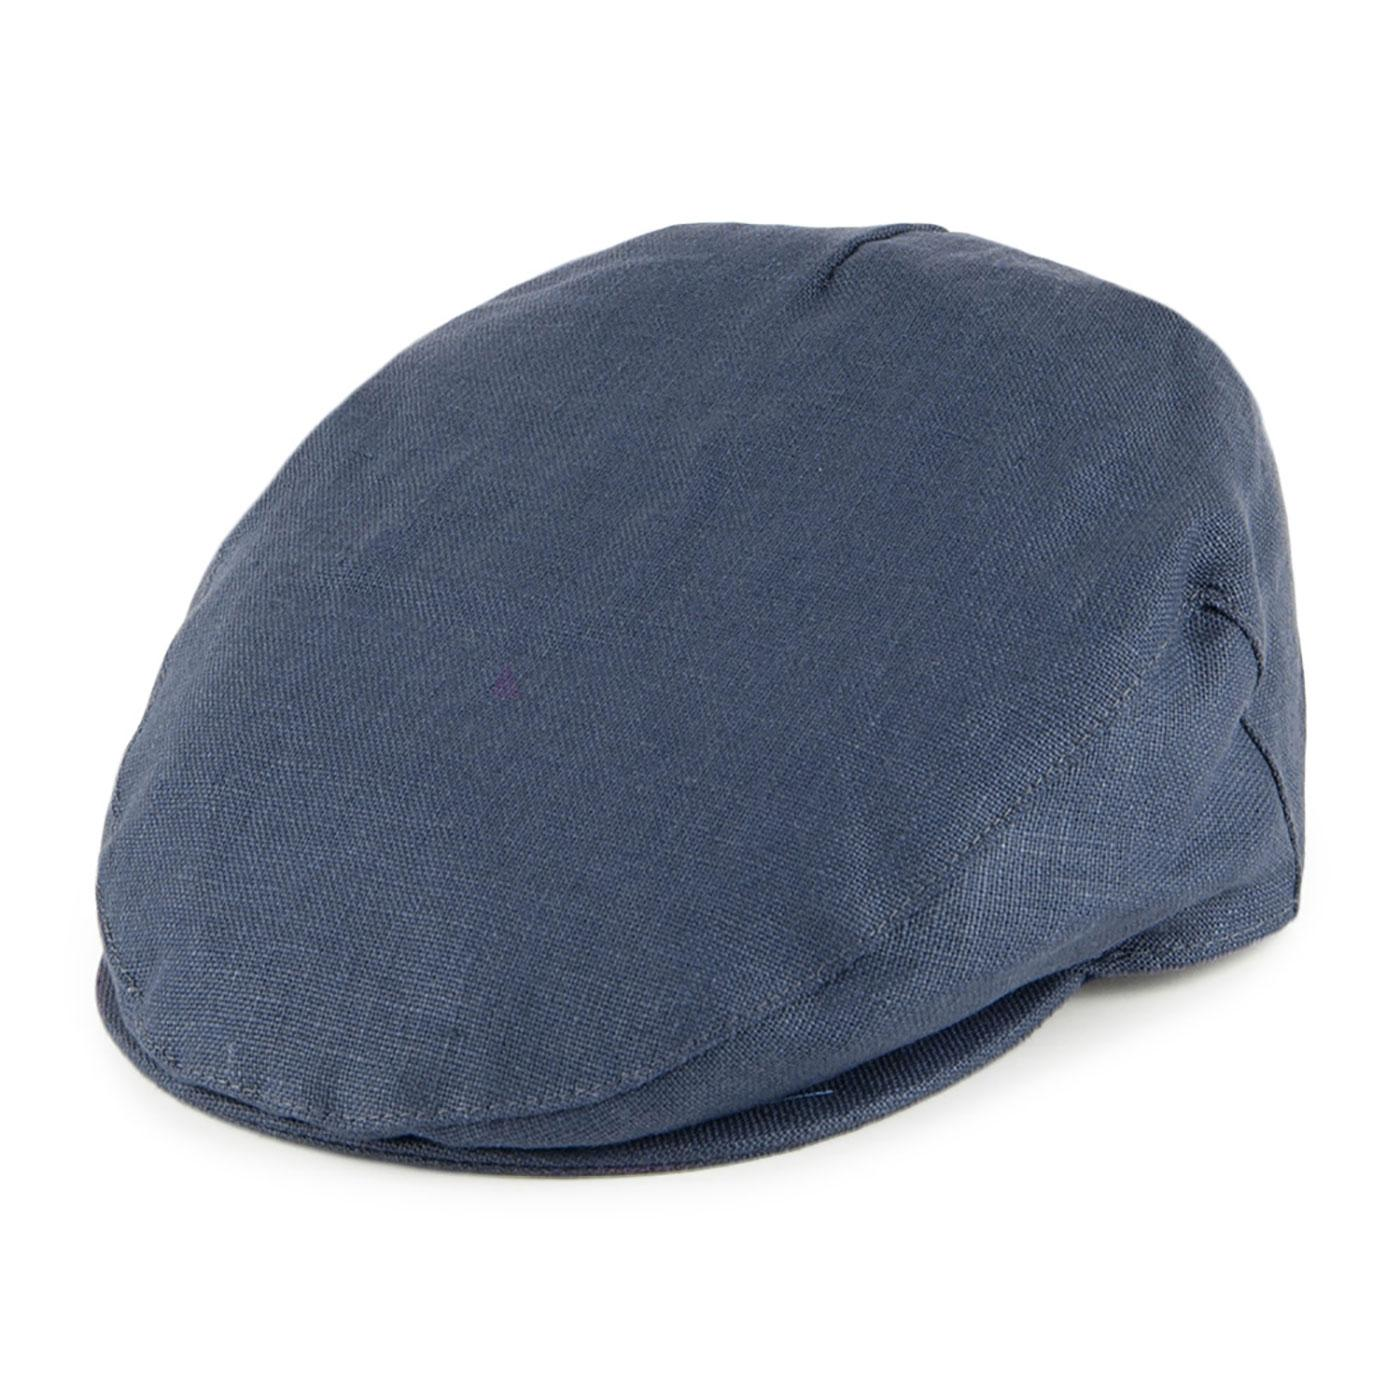 FAILSWORTH Men's Retro Irish Linen Flat Cap NAVY